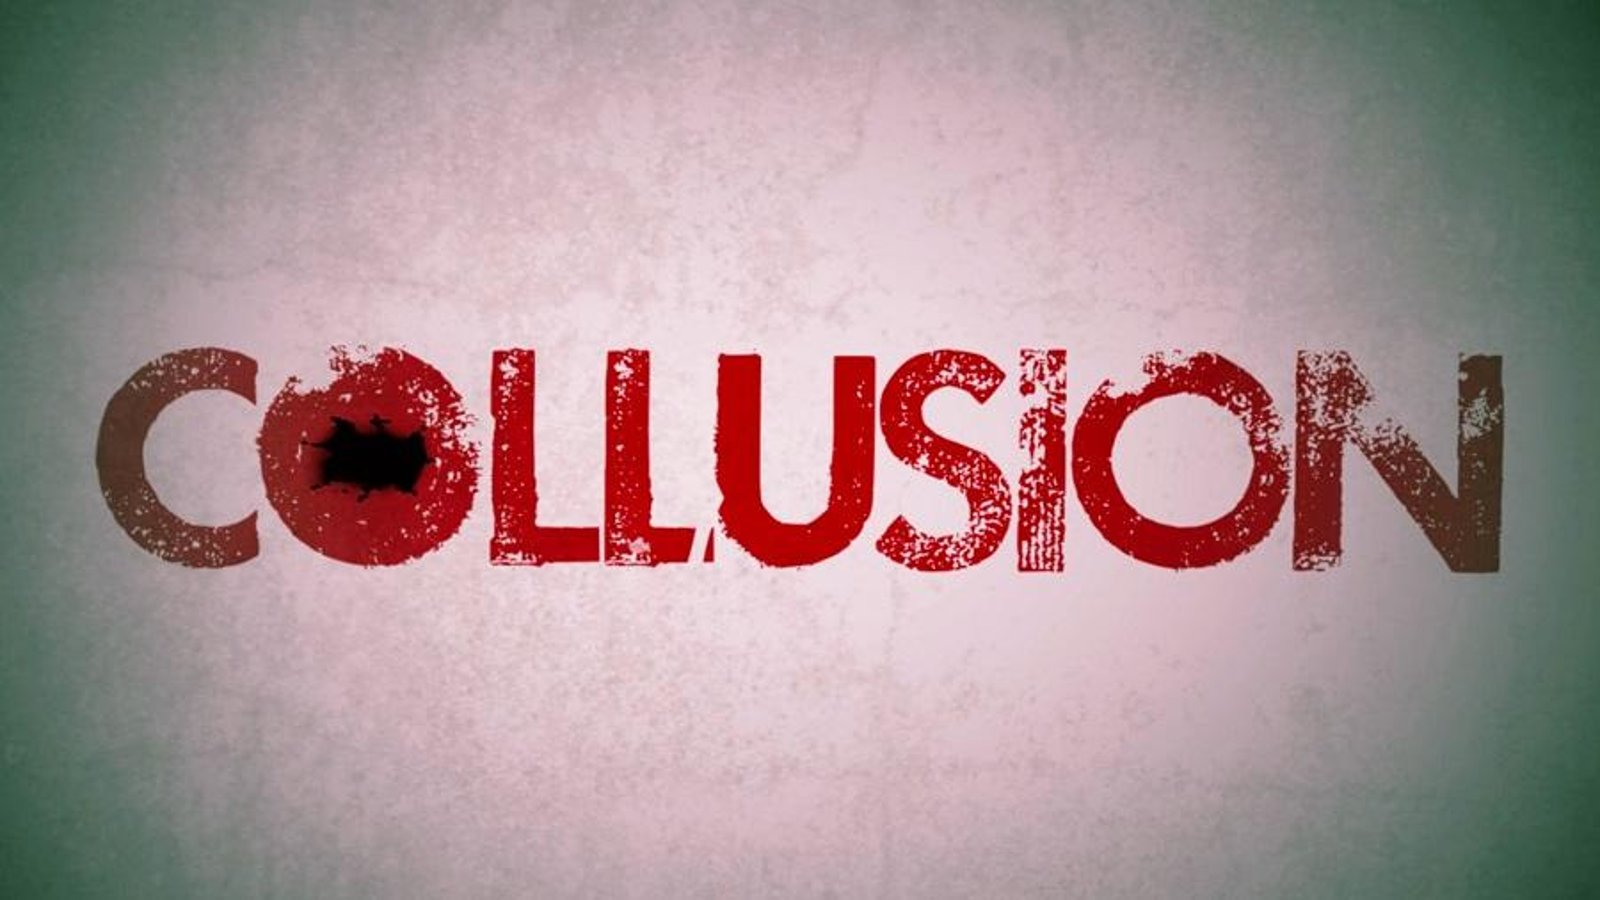 Collusion - The IRA Against the British Army